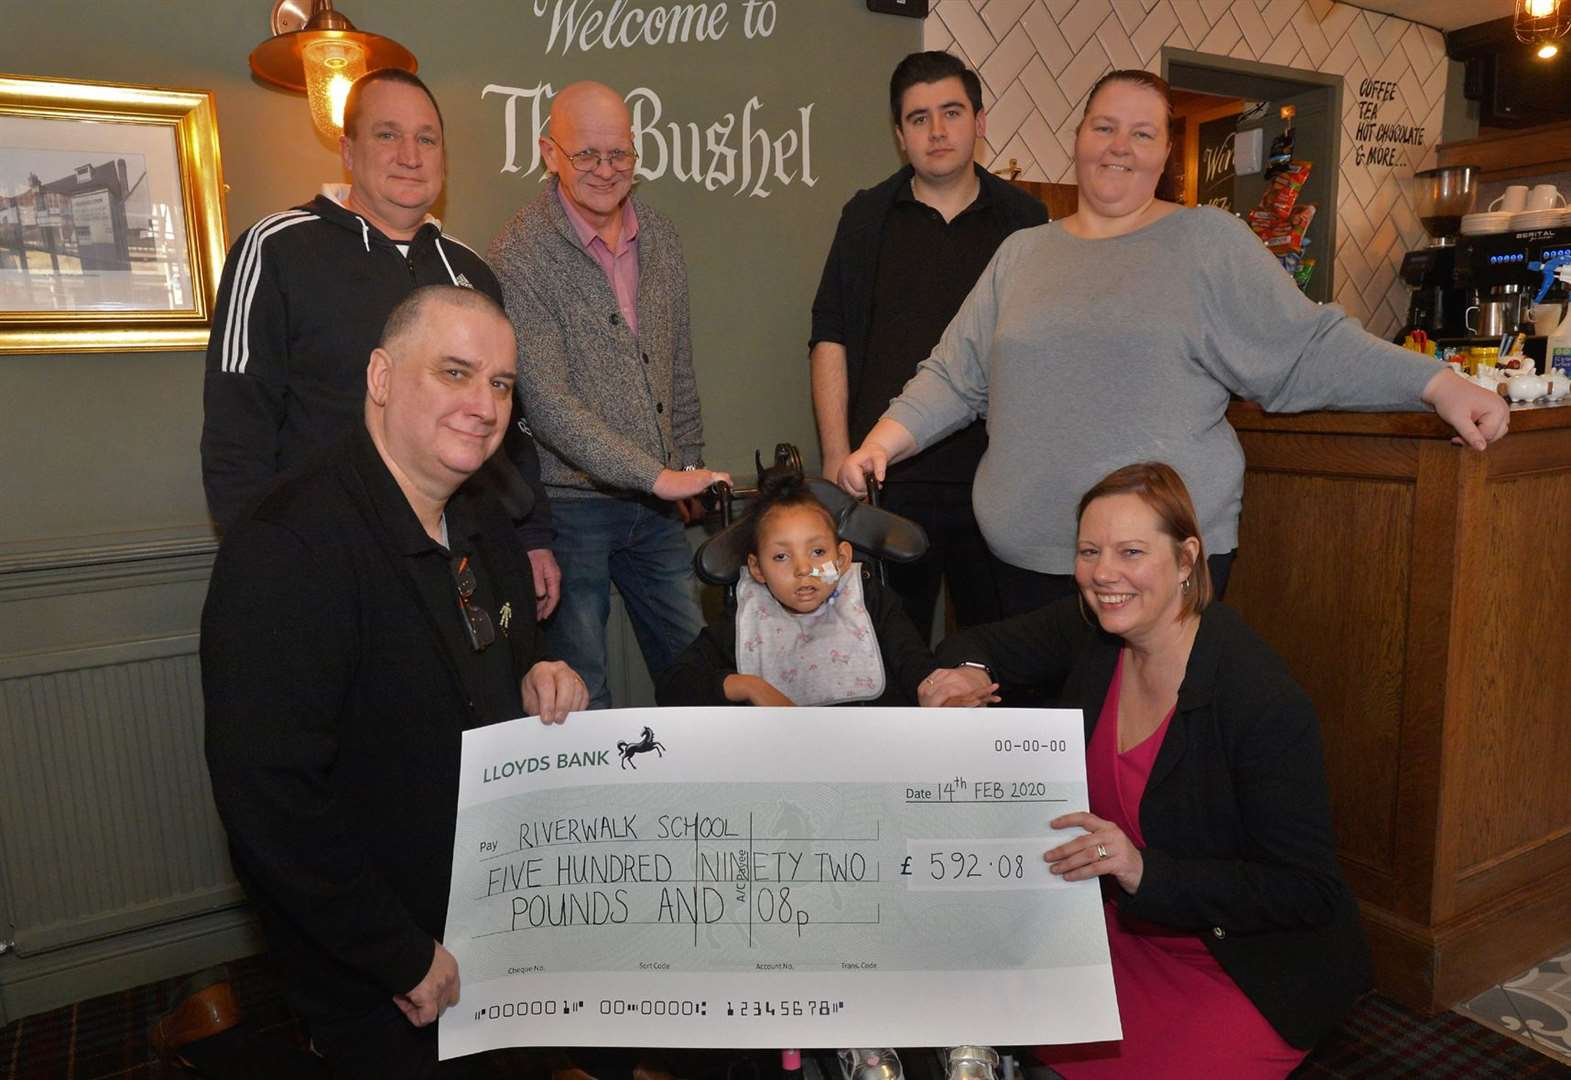 Bushel regular Lee completes 4000 sit-ups as Newmarket pub backs school's pool fund